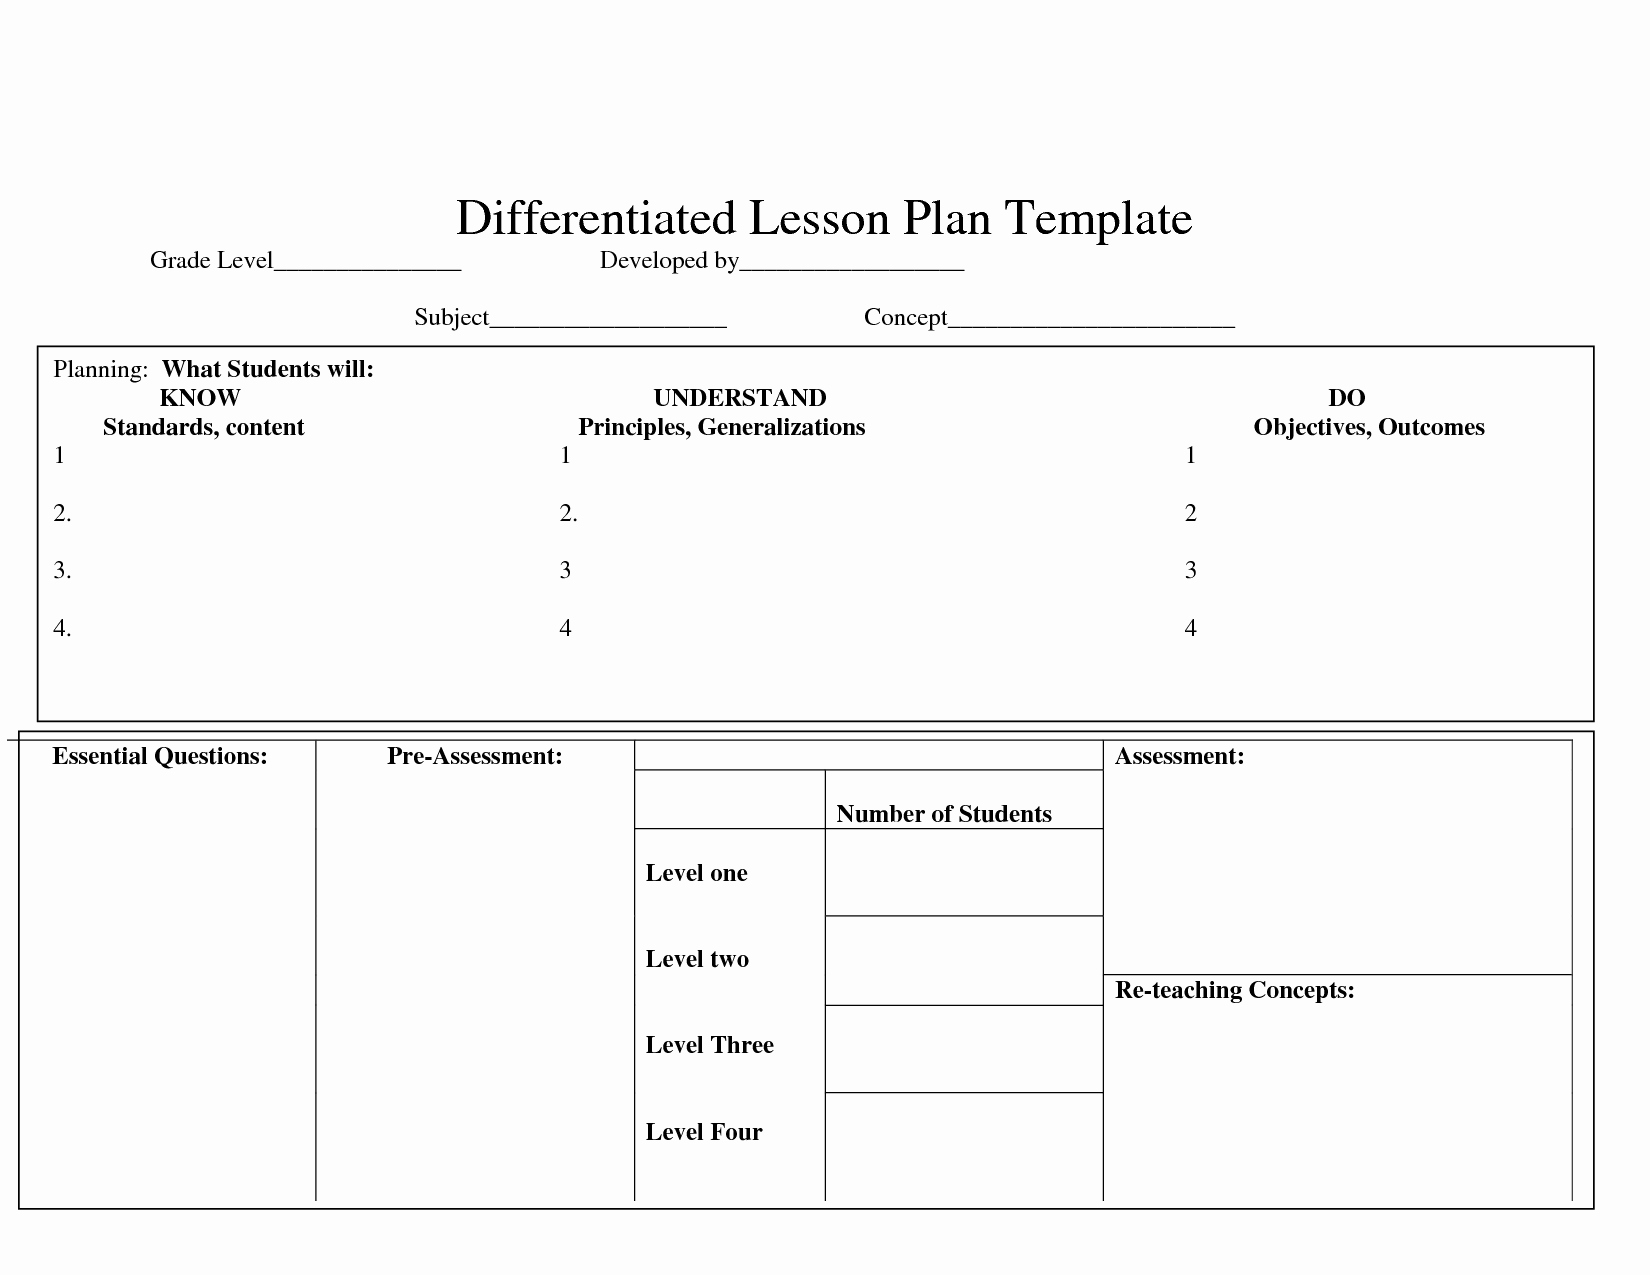 Differentiated Instruction Lesson Plan Template Awesome Differentiatedlearning